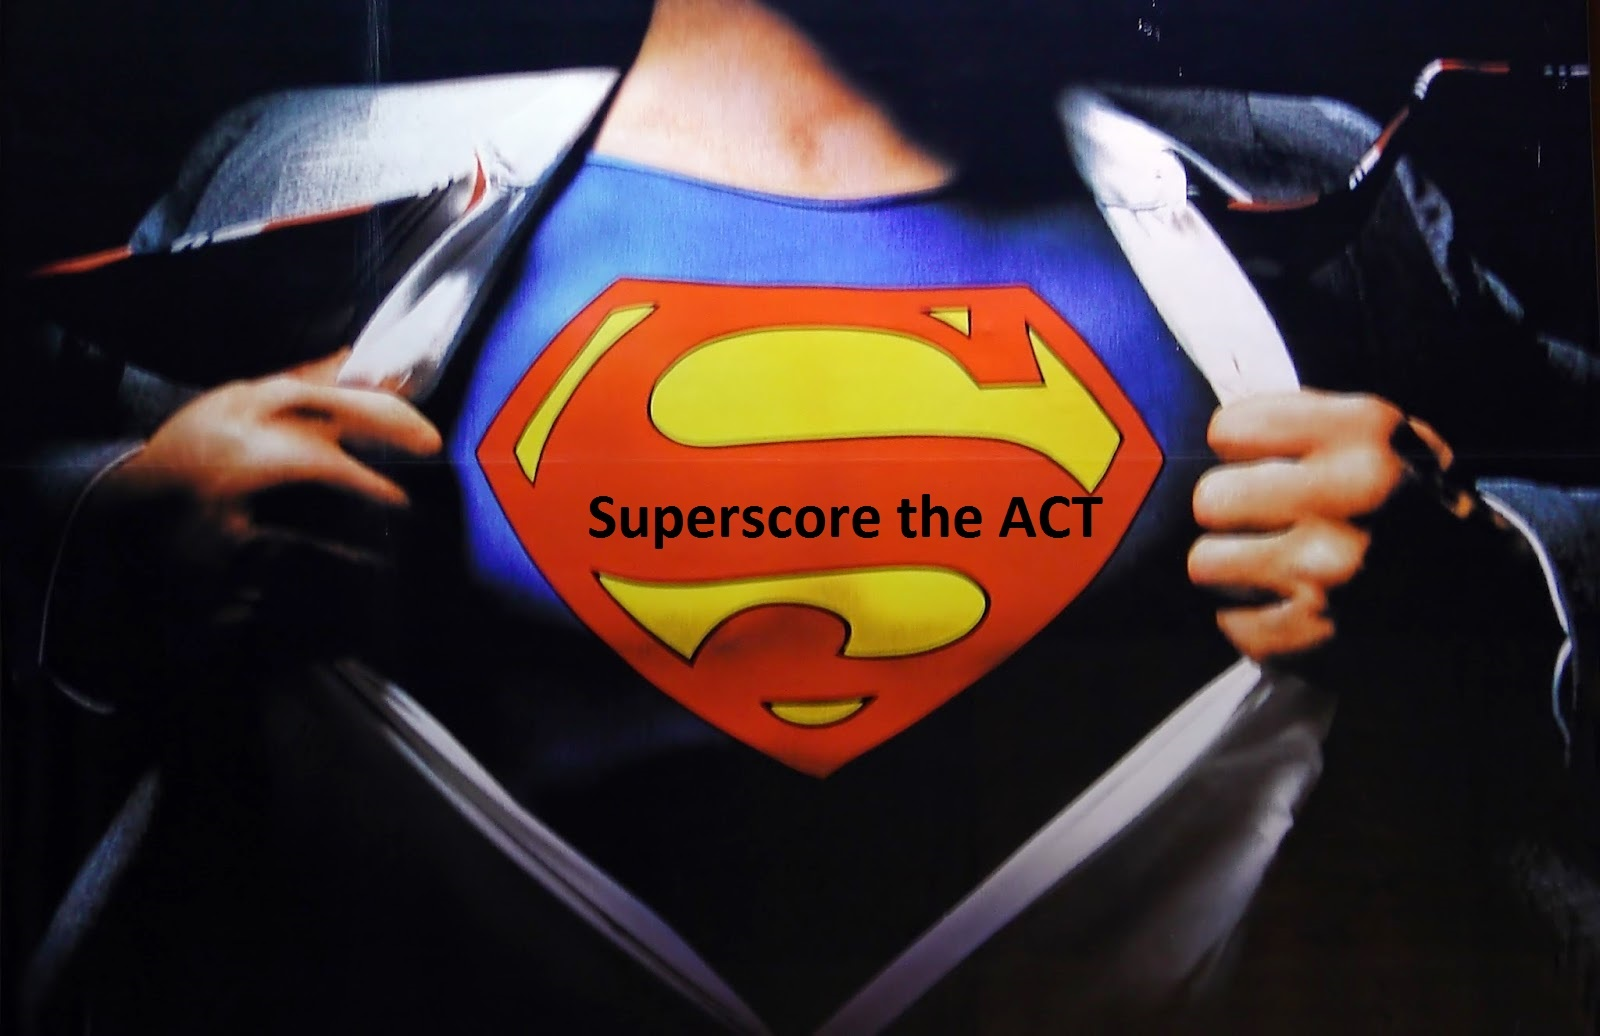 Superscore the ACT